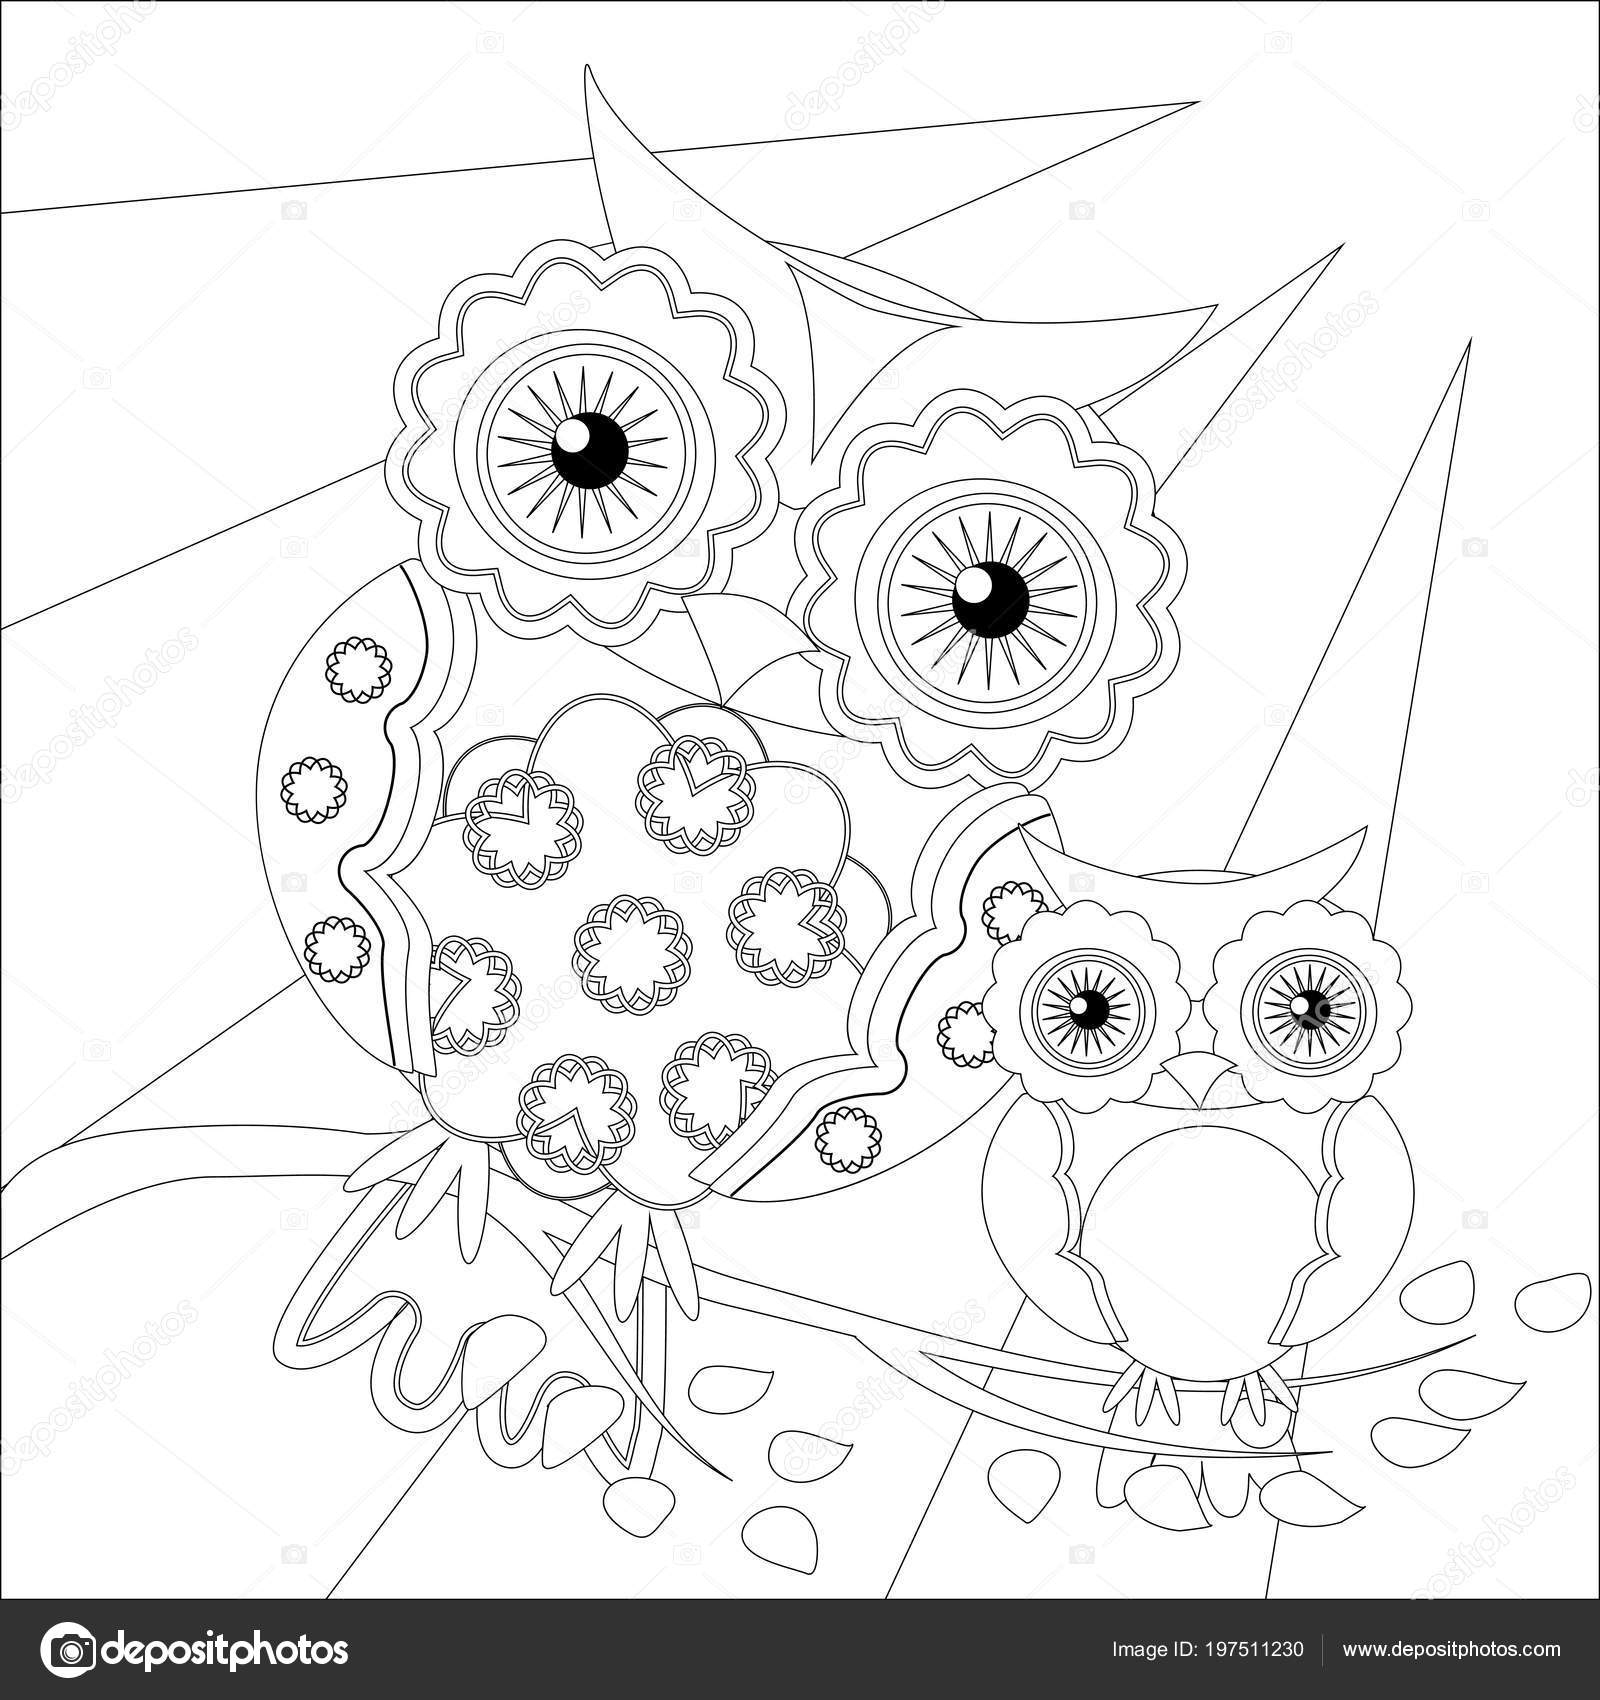 Coloring Book Adult Older Children Coloring Page Cute Owl Outline